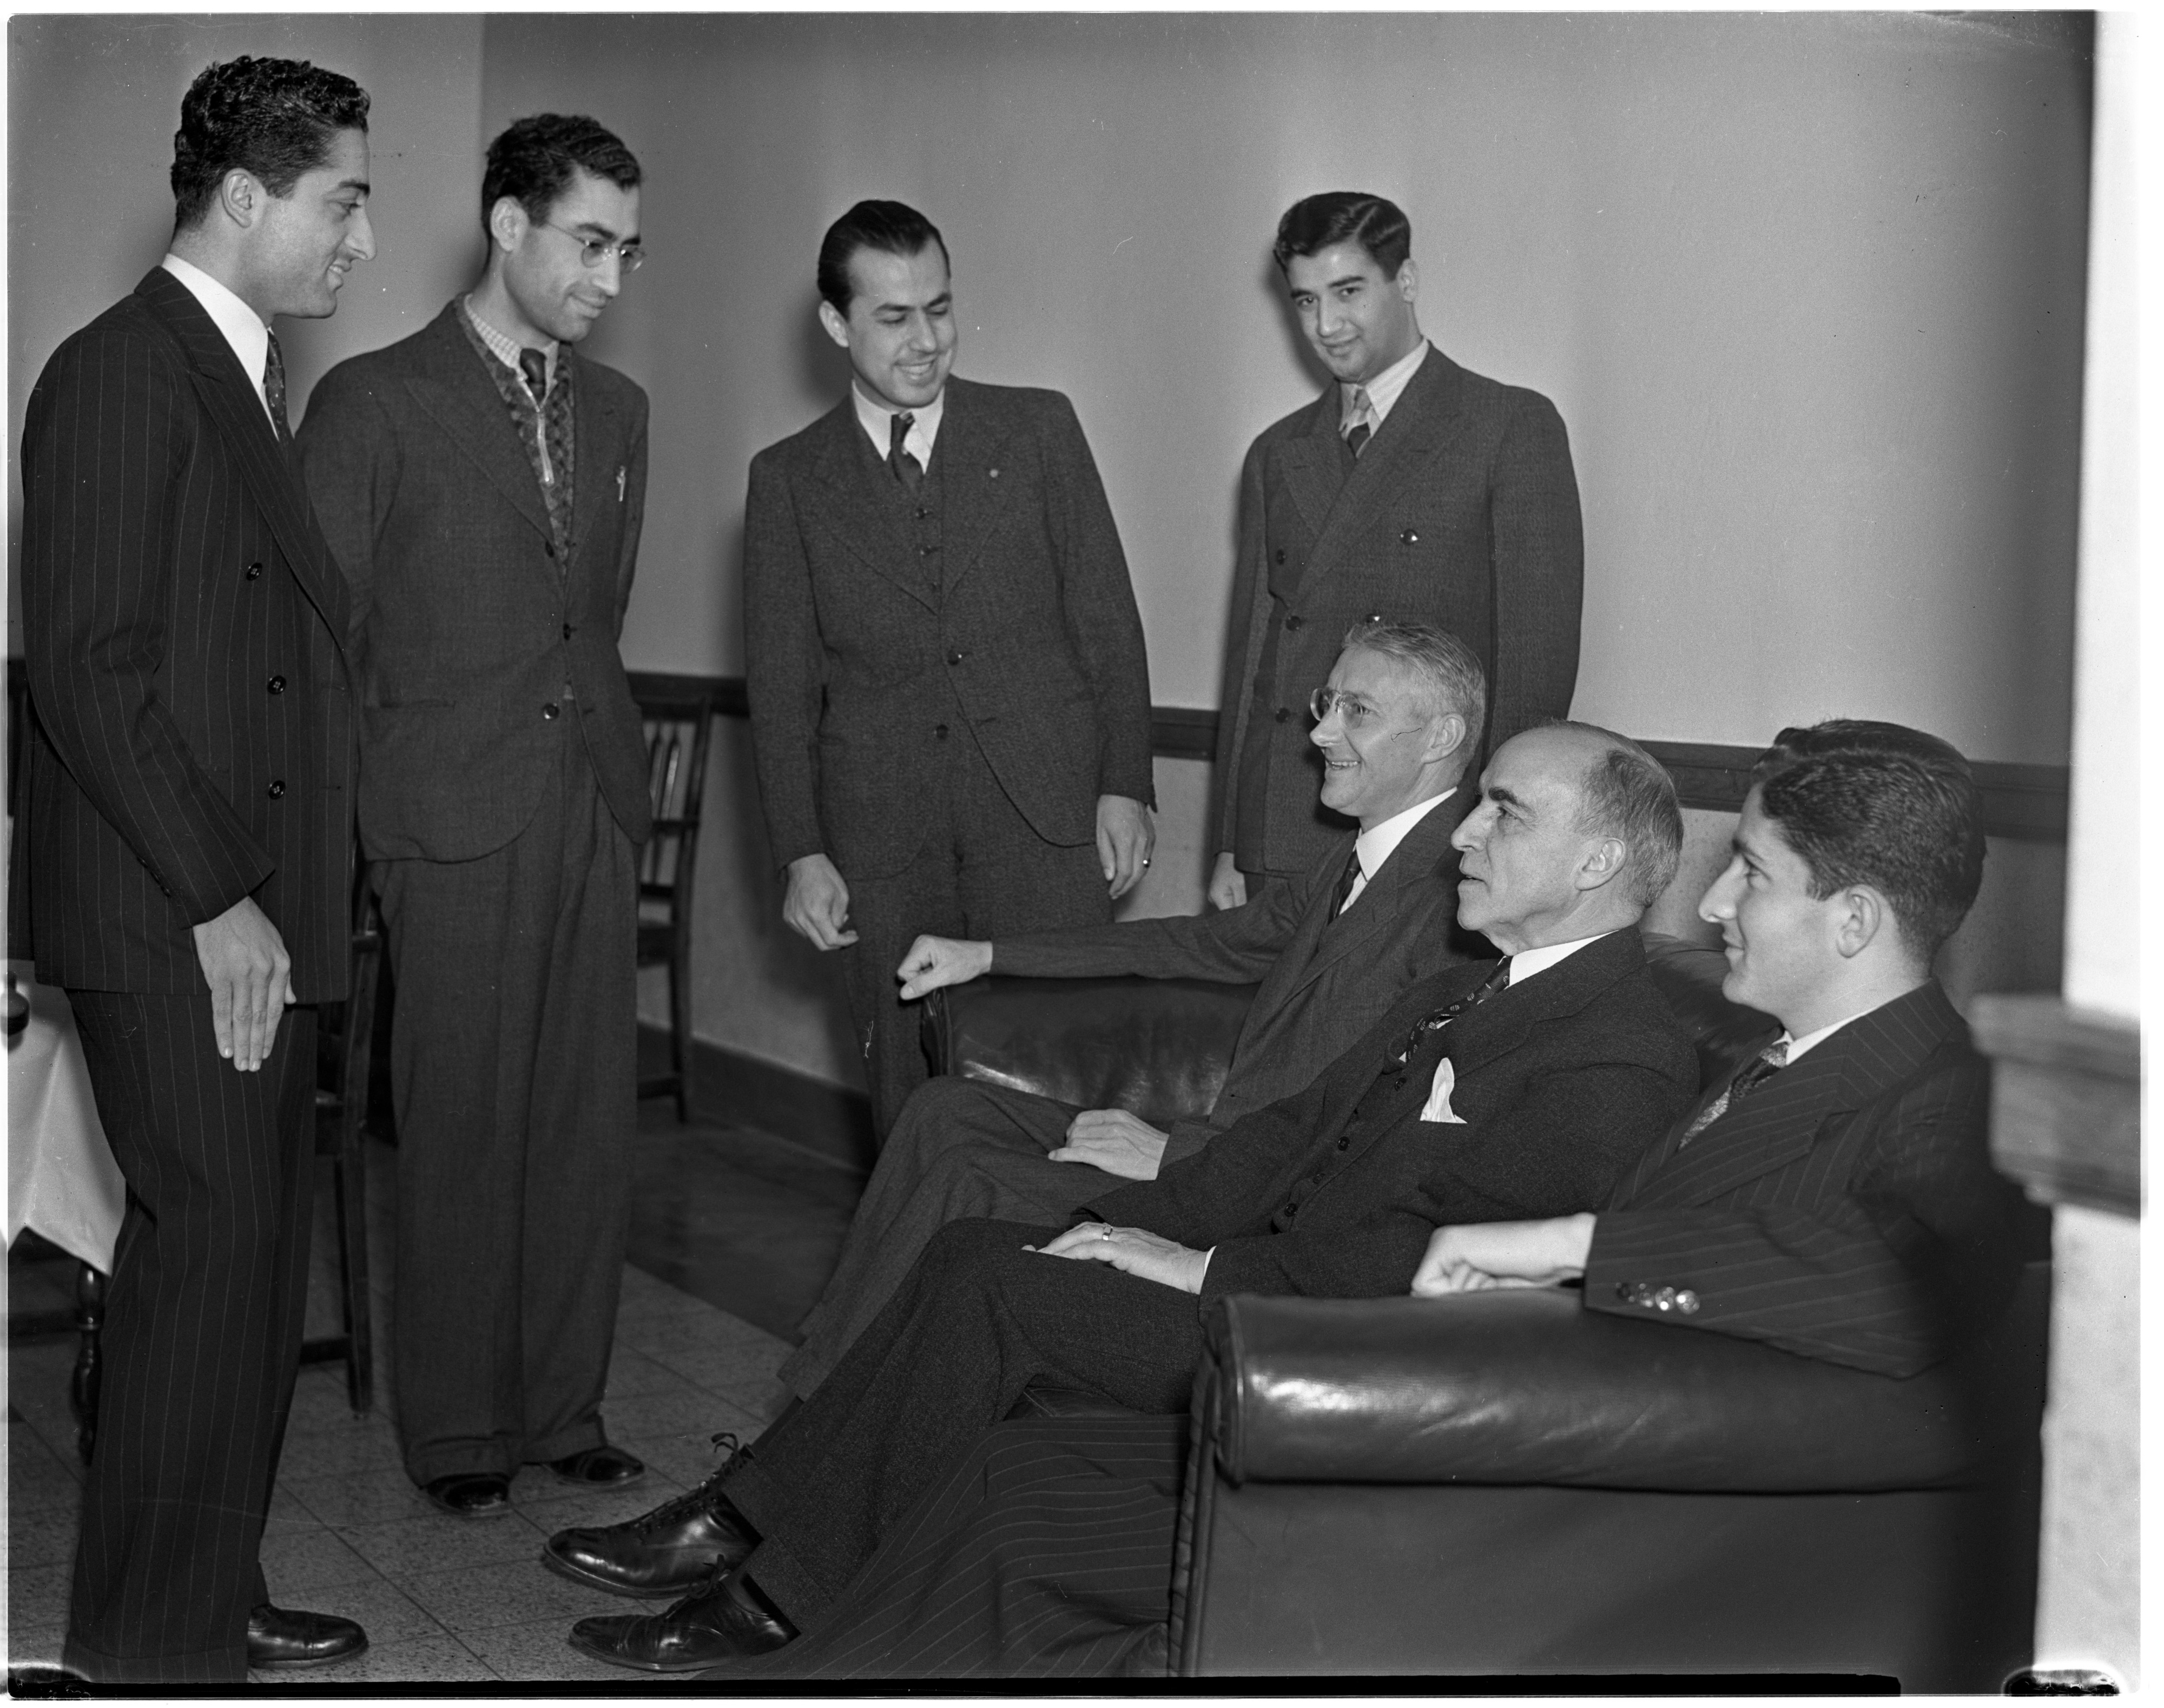 Dr. Bayard Dodge Meets With Former Students Of The American University Of Beirut, January 1938 image